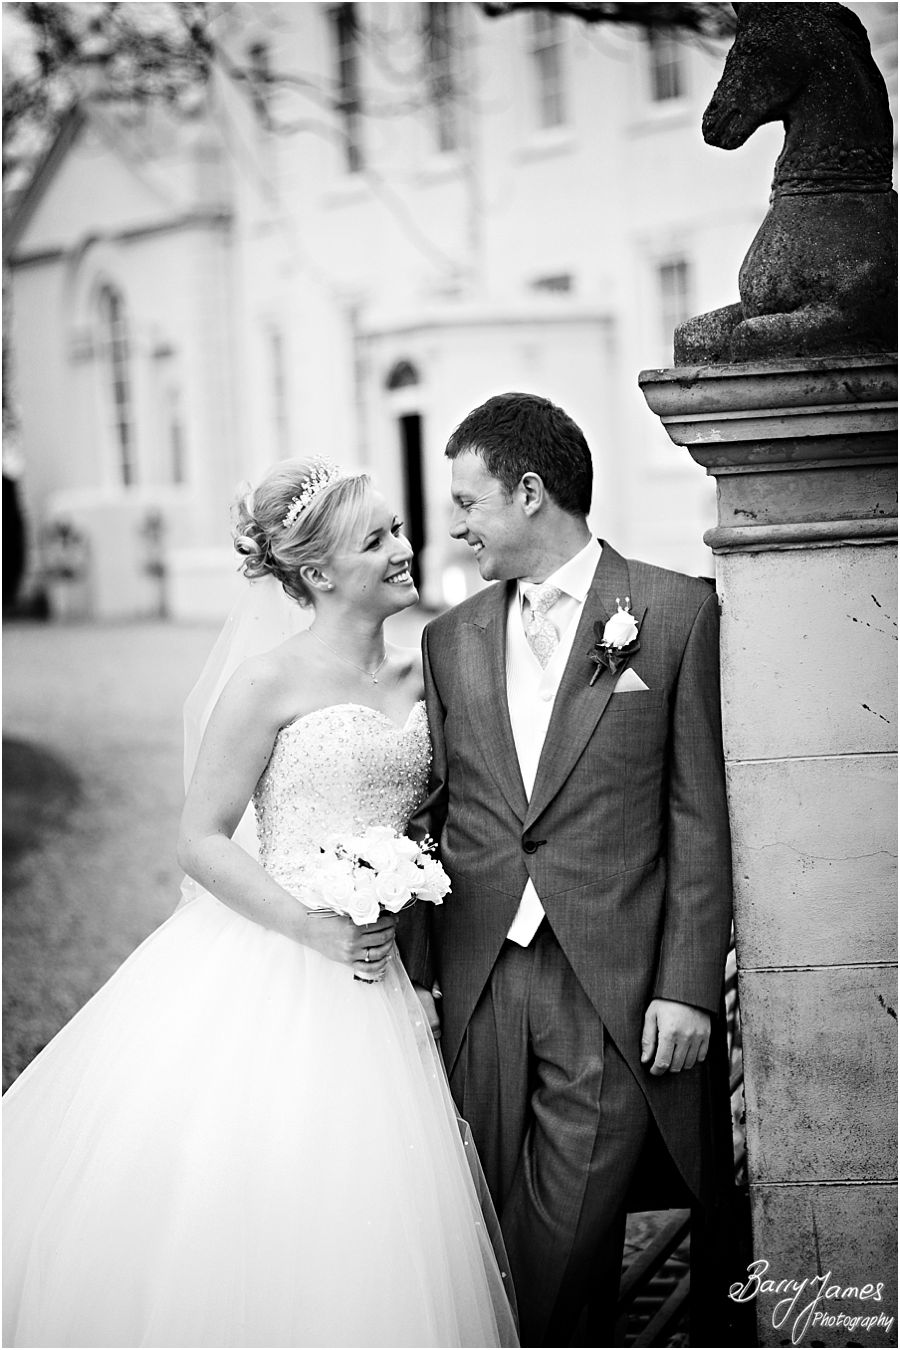 Creative contemporary wedding photography of a winter weddings at Somerford Hall in Brewood by Staffordshire Wedding Photographers Barry James